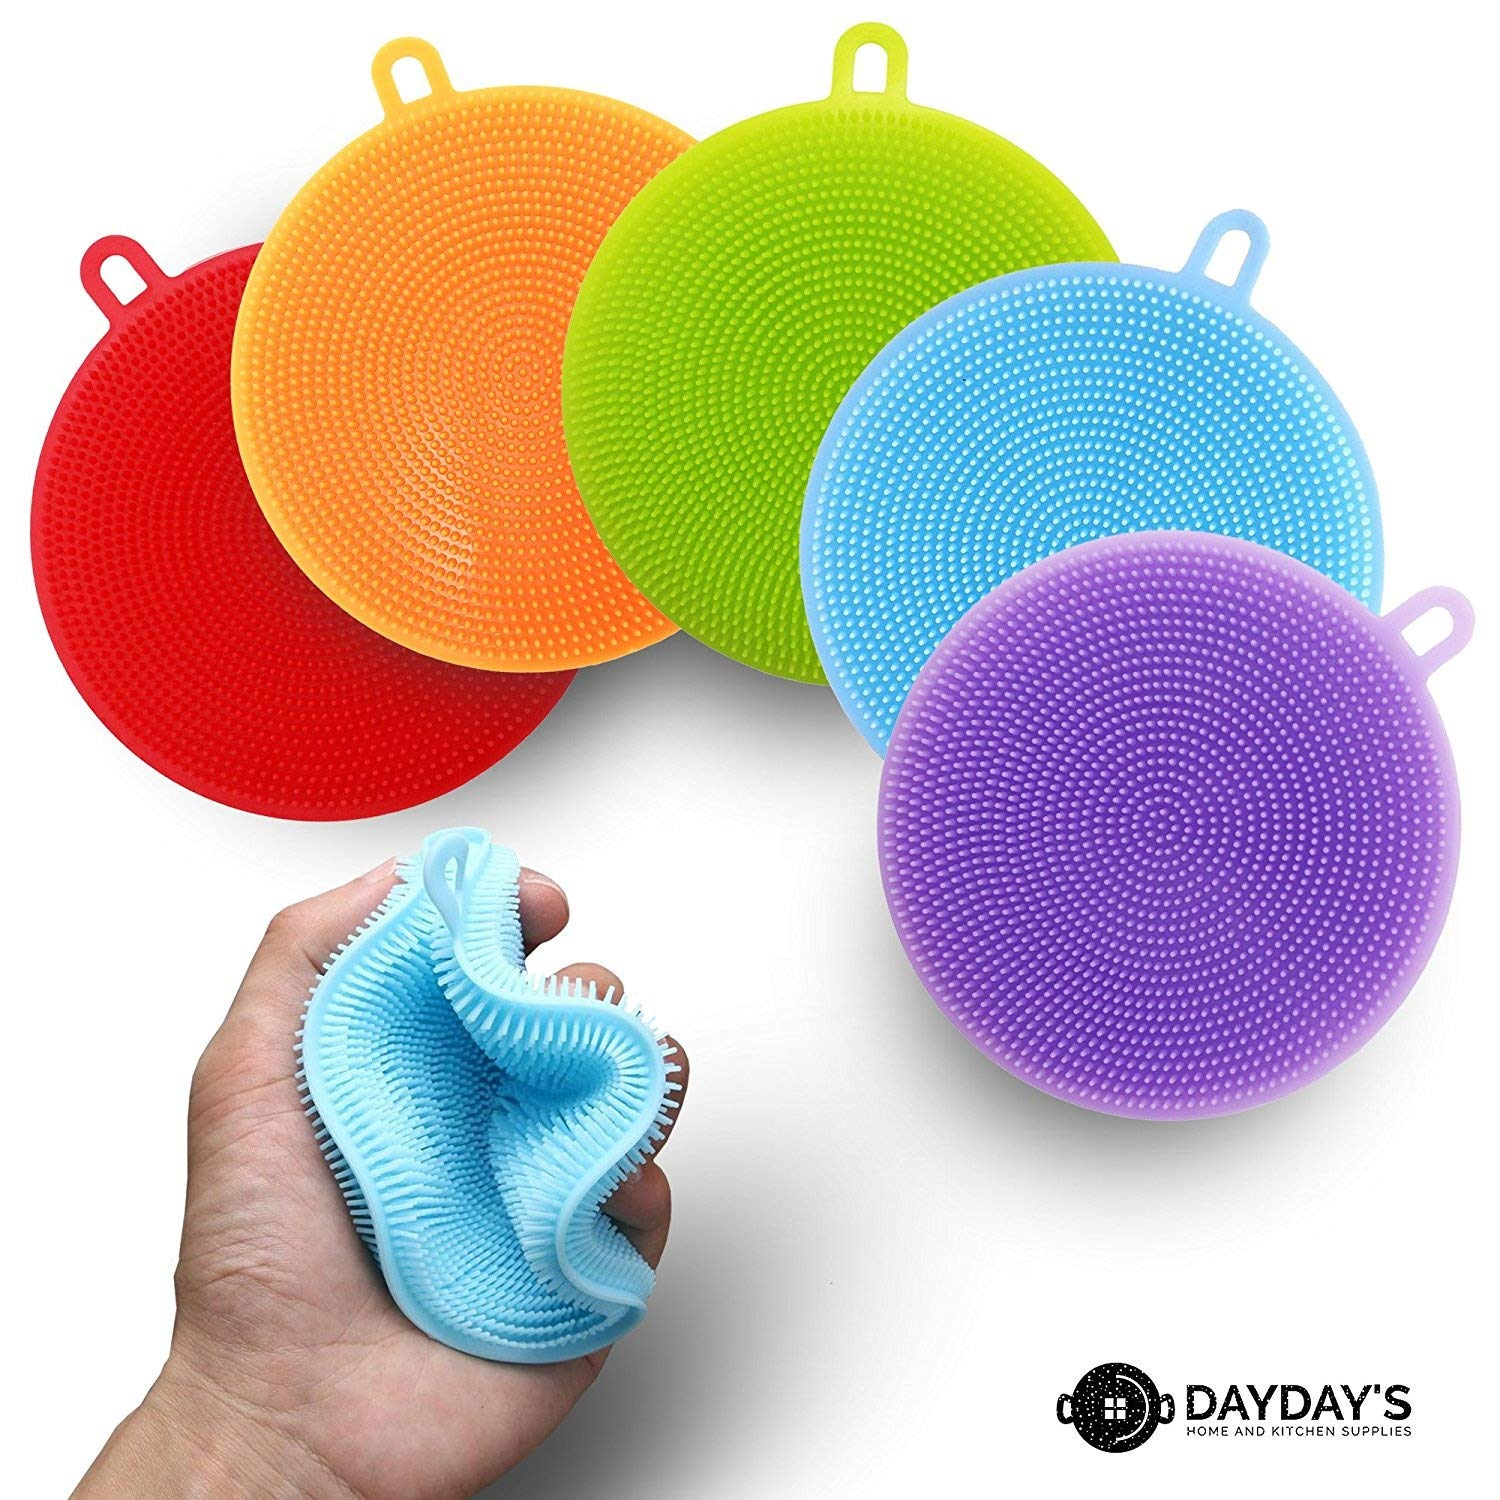 Silicone Kitchen Sponge 3, 5, or 10-Pack. Scrubber for Dishes is Food Grade Antibacterial for Easy Cleaning. Multipurpose as Heat Resistant Pot Holder, Cleans Make-Up Brushes. Non-Stick, Easy Clean DayDay